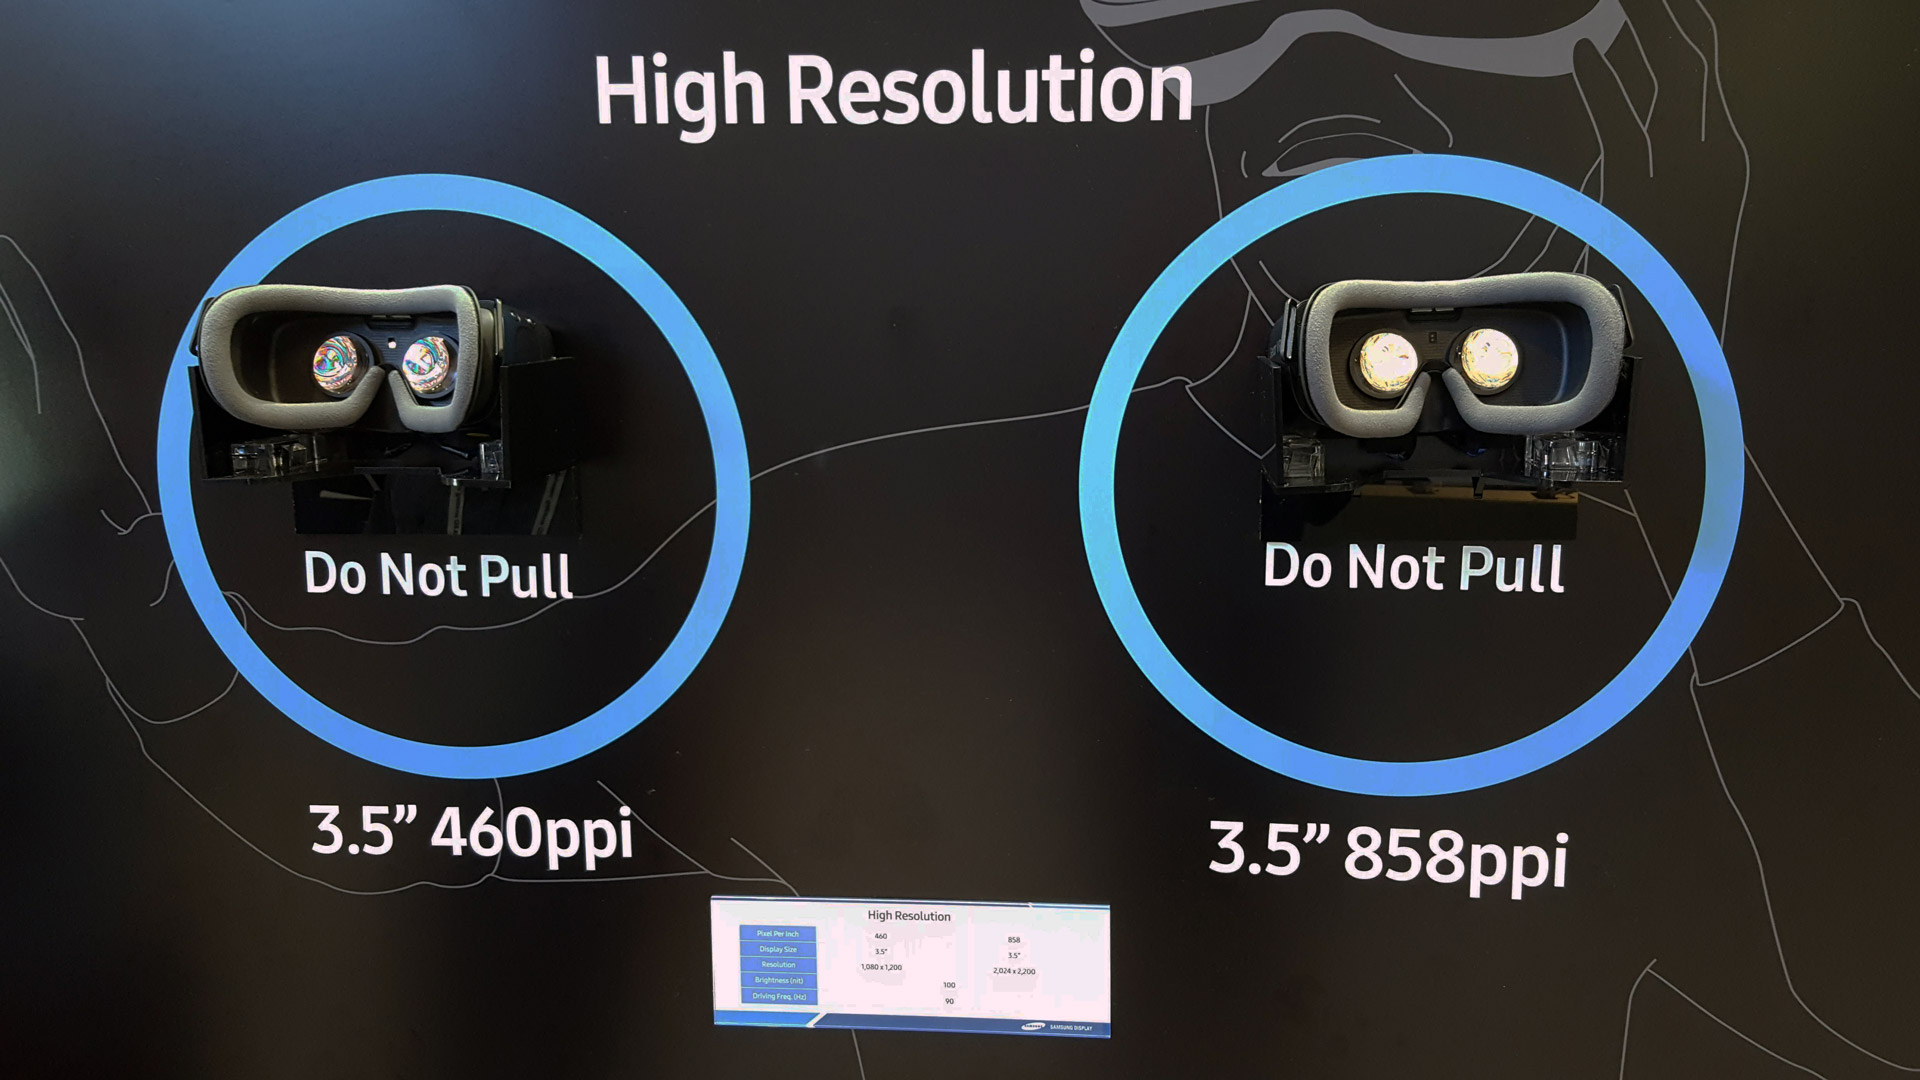 a90c9592edf Samsung s New VR Display Has Nearly 3.5x More Pixels Than Rift   Vive